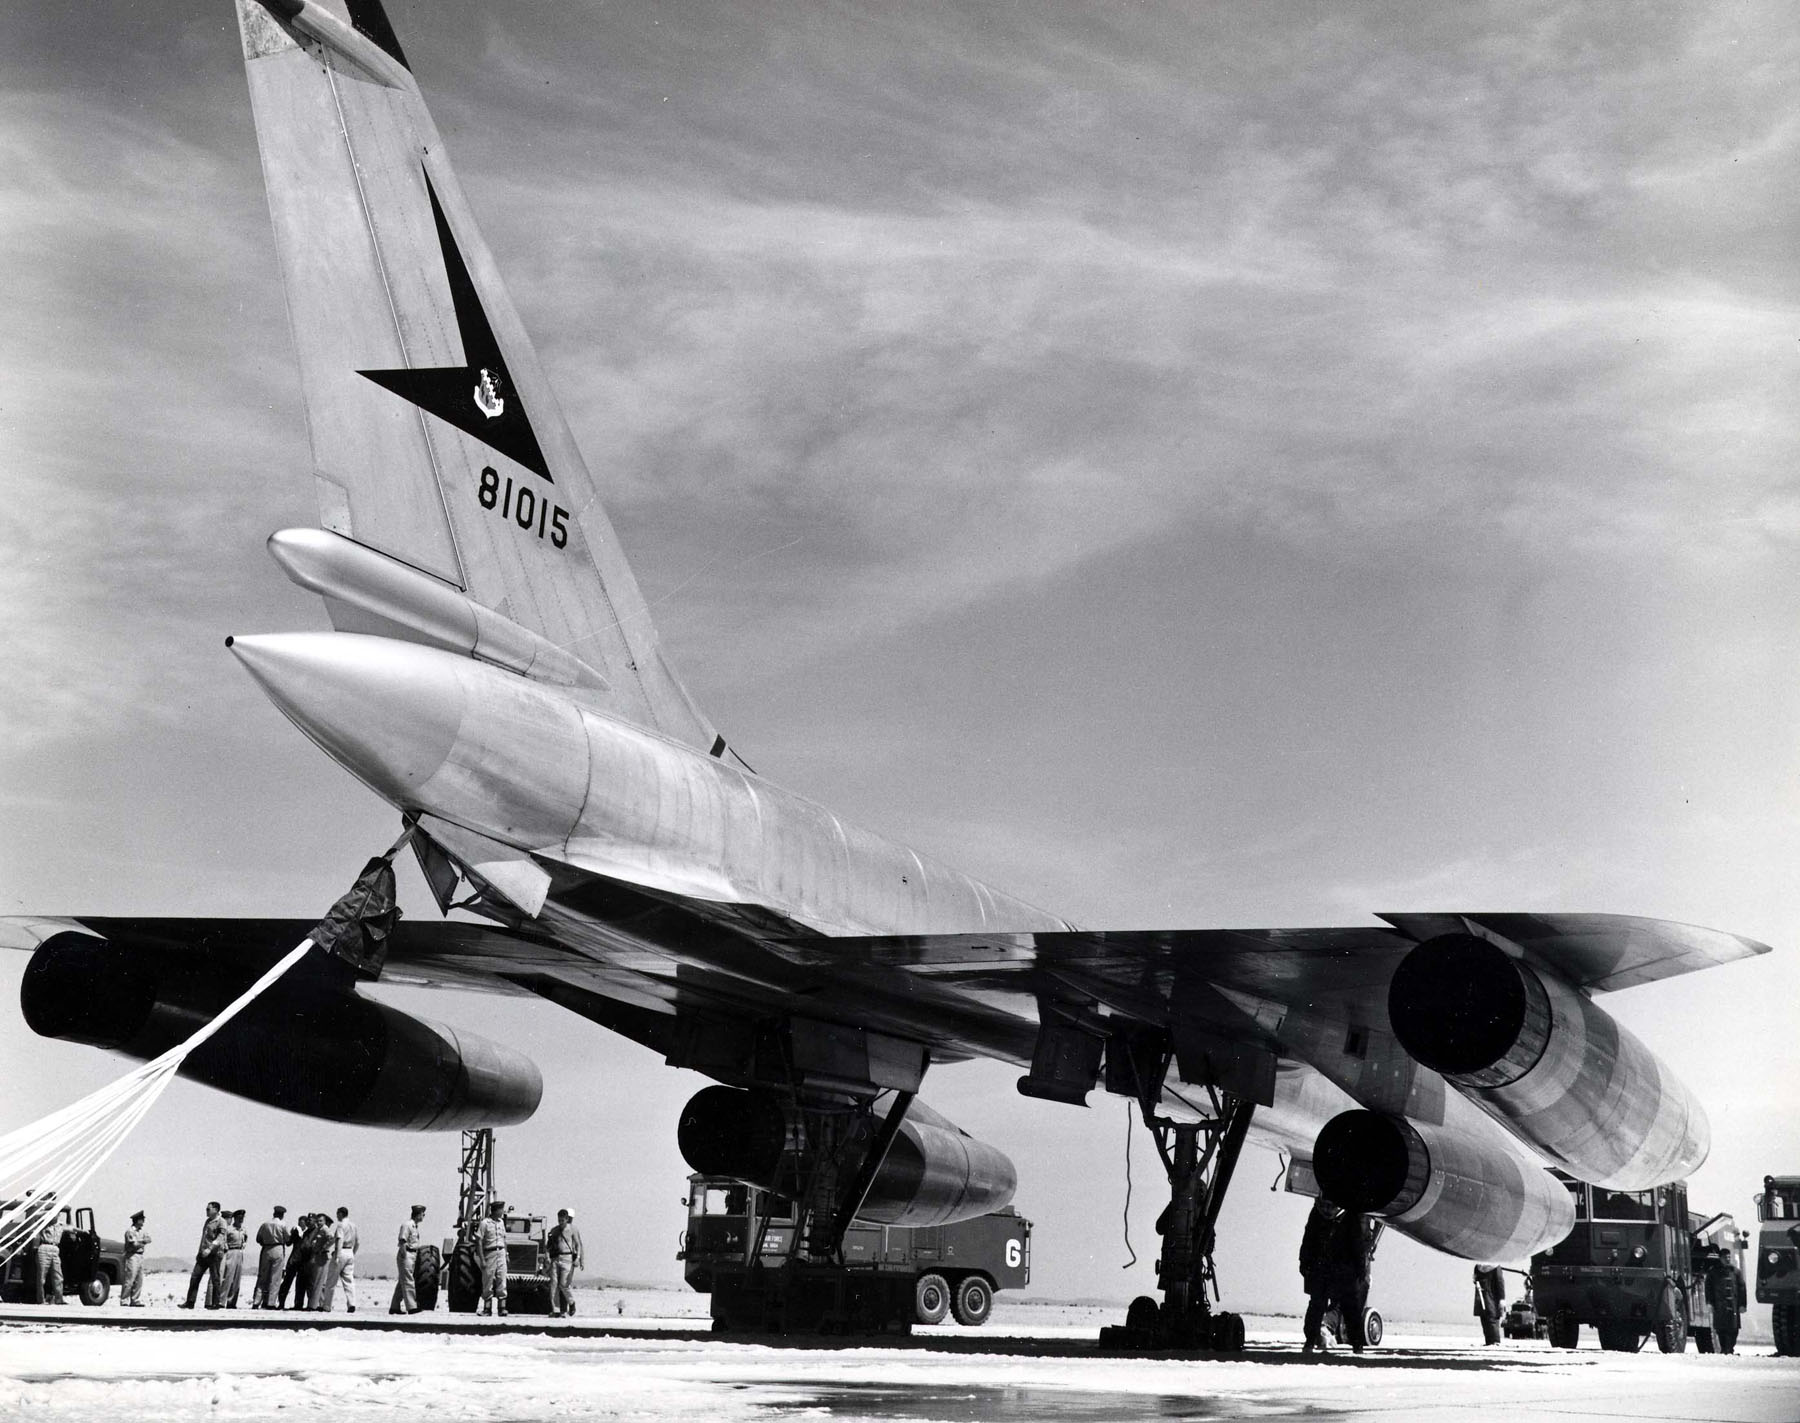 File:Convair RB-58A Hustler 3-4 rear view (SN 58-